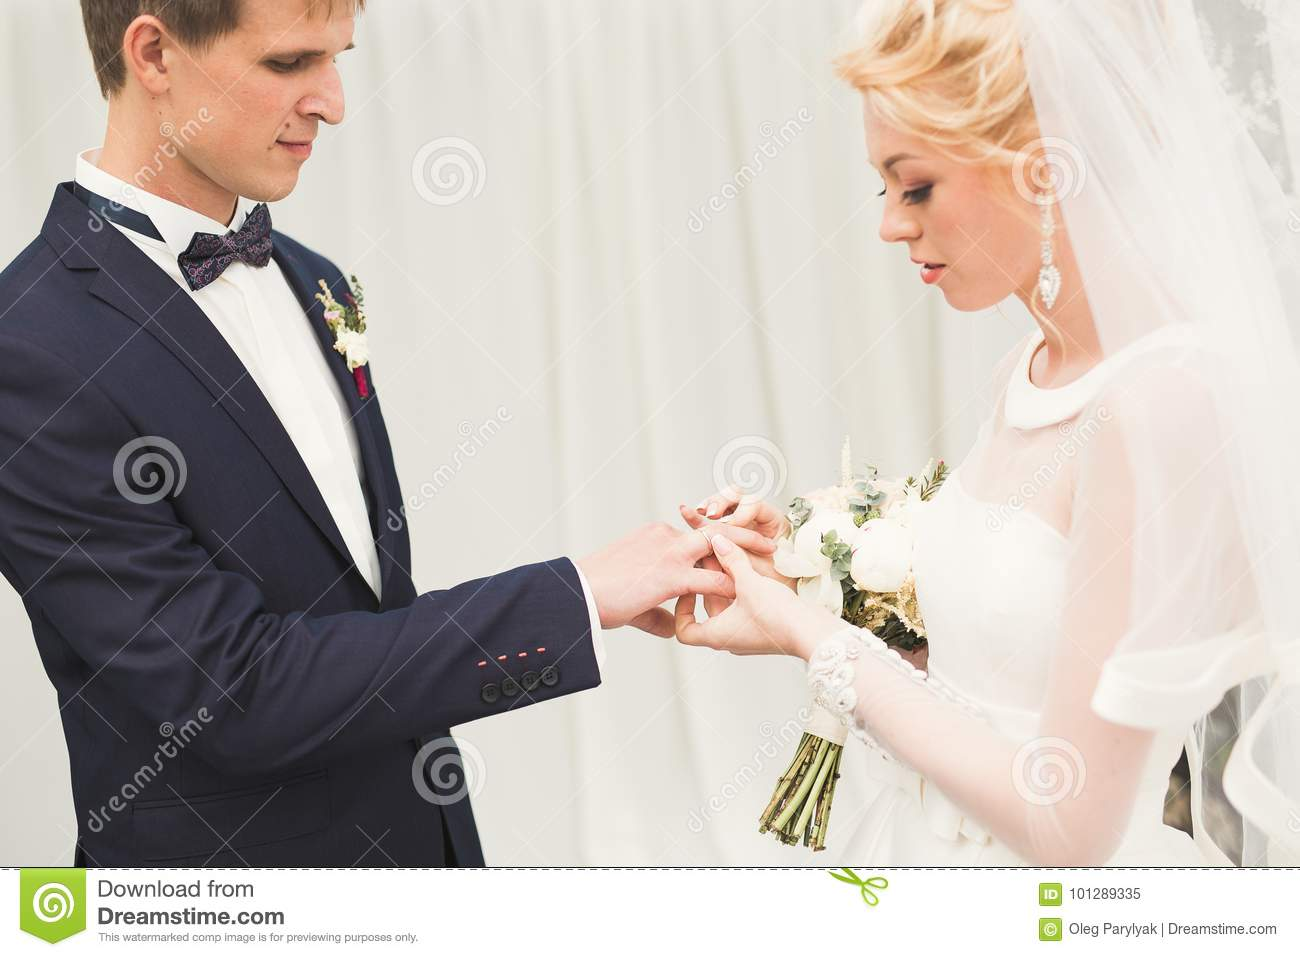 Bride And Groom Exchanging Wedding Rings. Stylish Couple Official Ceremony Stock Image